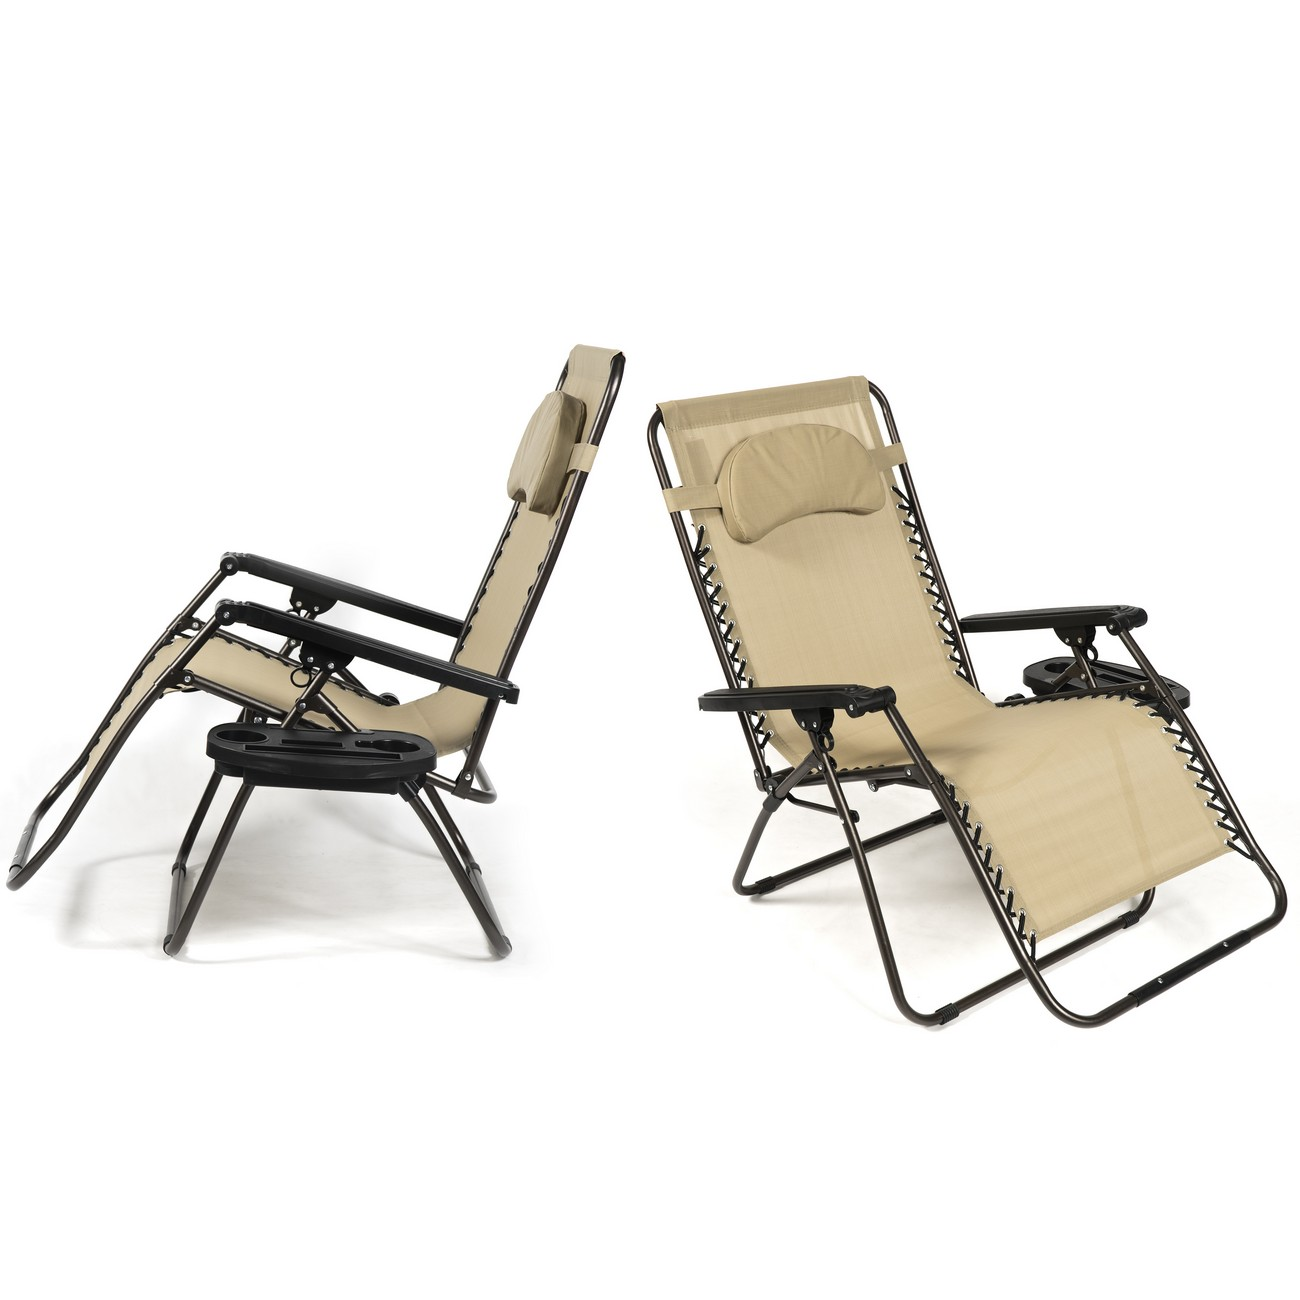 zero gravity patio chair xl recliner sale new set of 2 oversize chairs